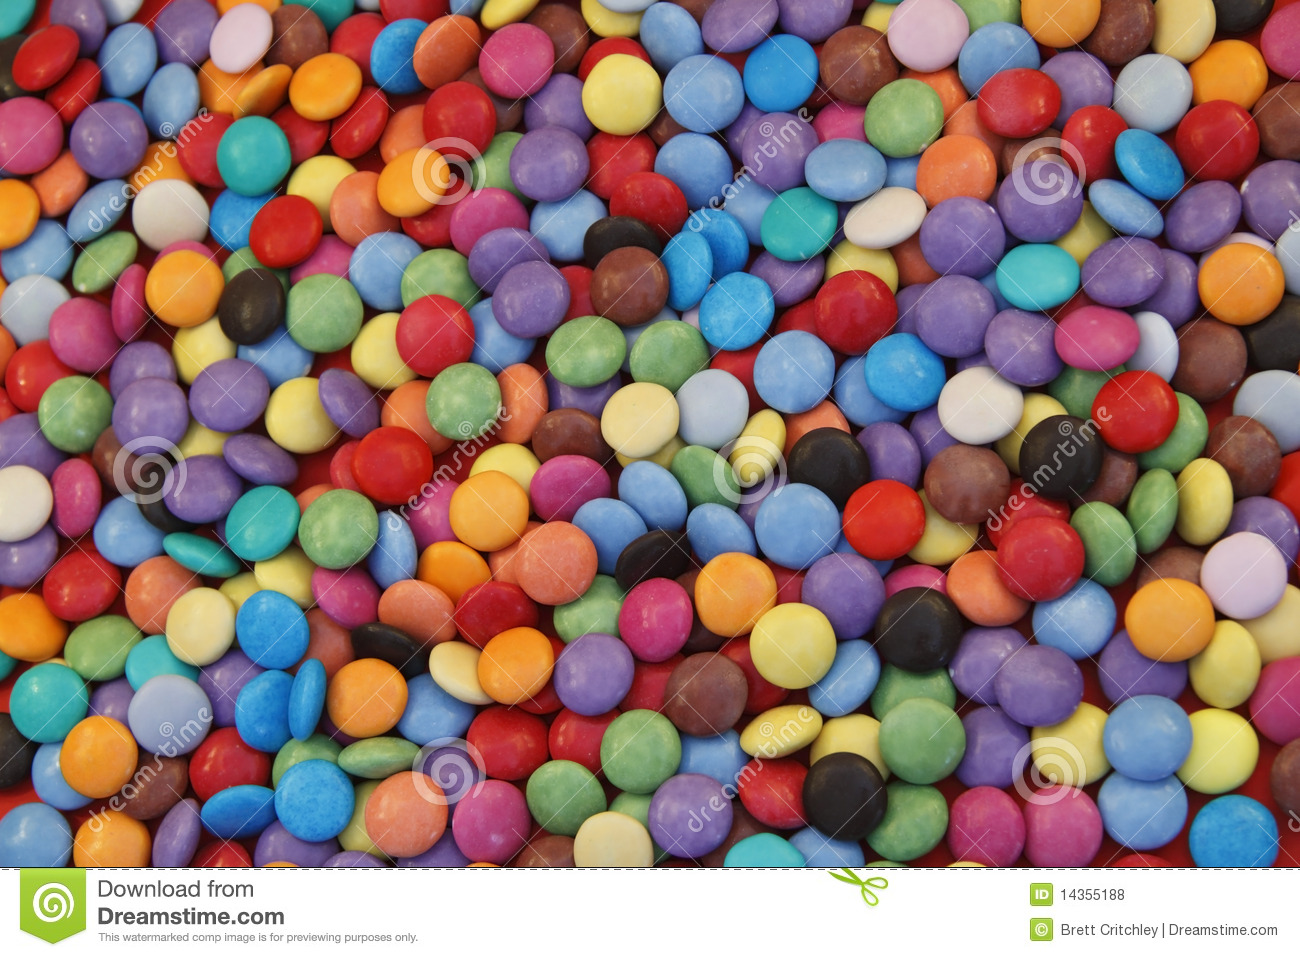 Candy sweets smarties stock photo. Image of addiction